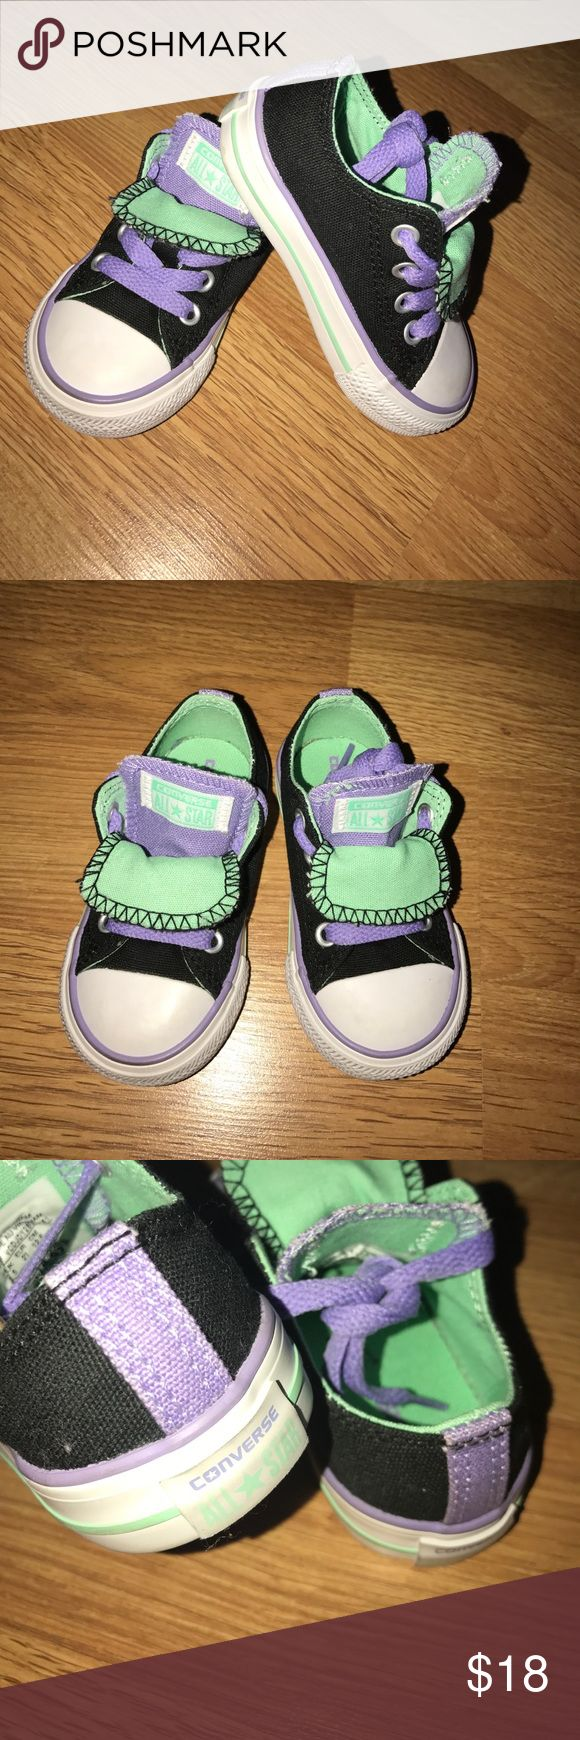 All Star Converse Toddler Size 5 These converse sneakers are in great condition, practically new. They have a unique double layered tongue. Colors are Black, Purple, Mint, and White. Converse Shoes Sneakers